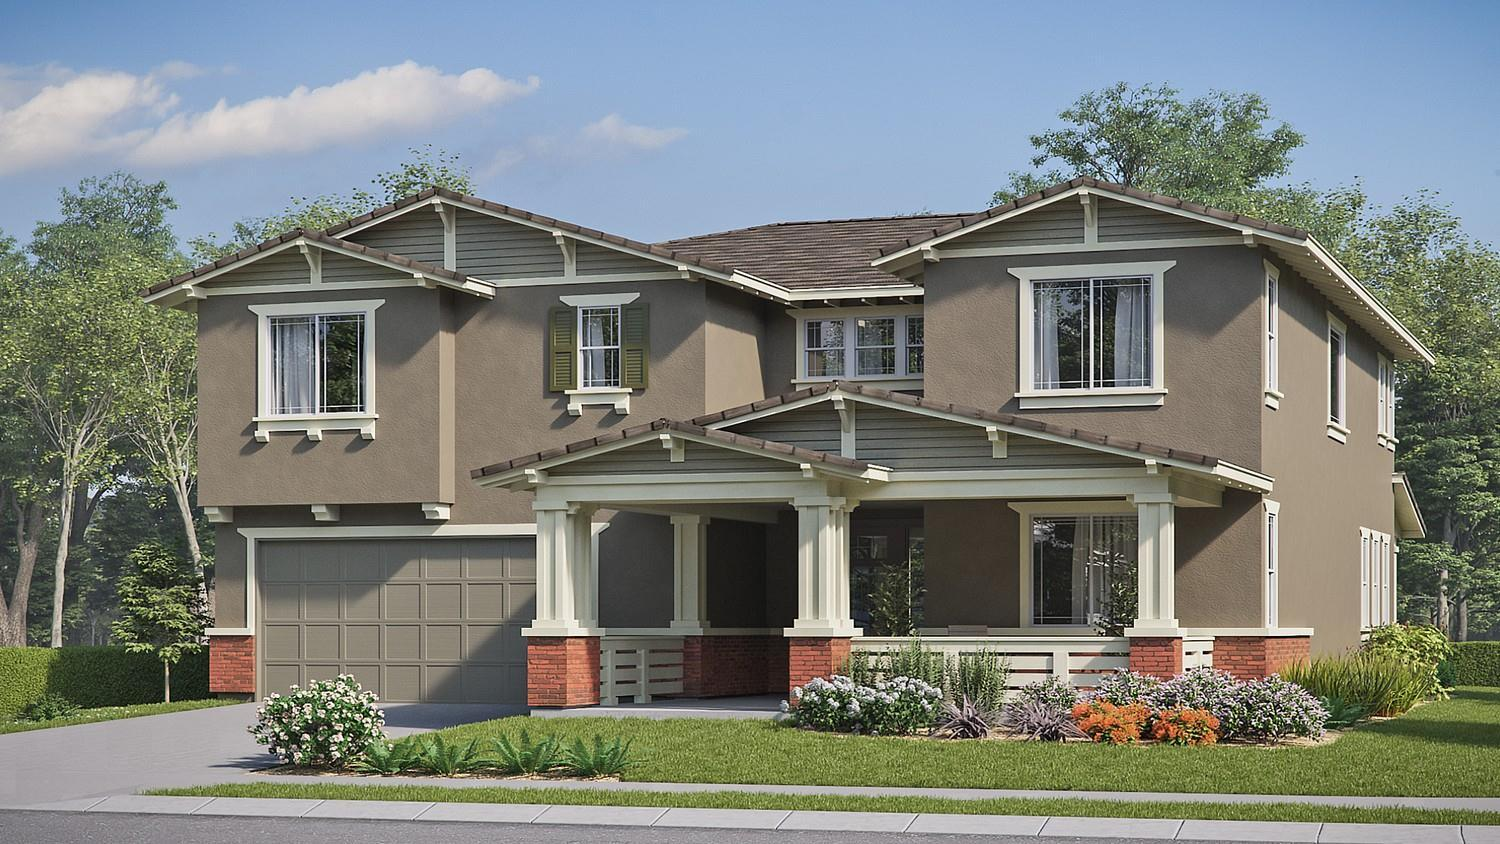 Single Family for Active at Heritage Grove - Residence 6 105 Teakwood Fillmore, California 93015 United States